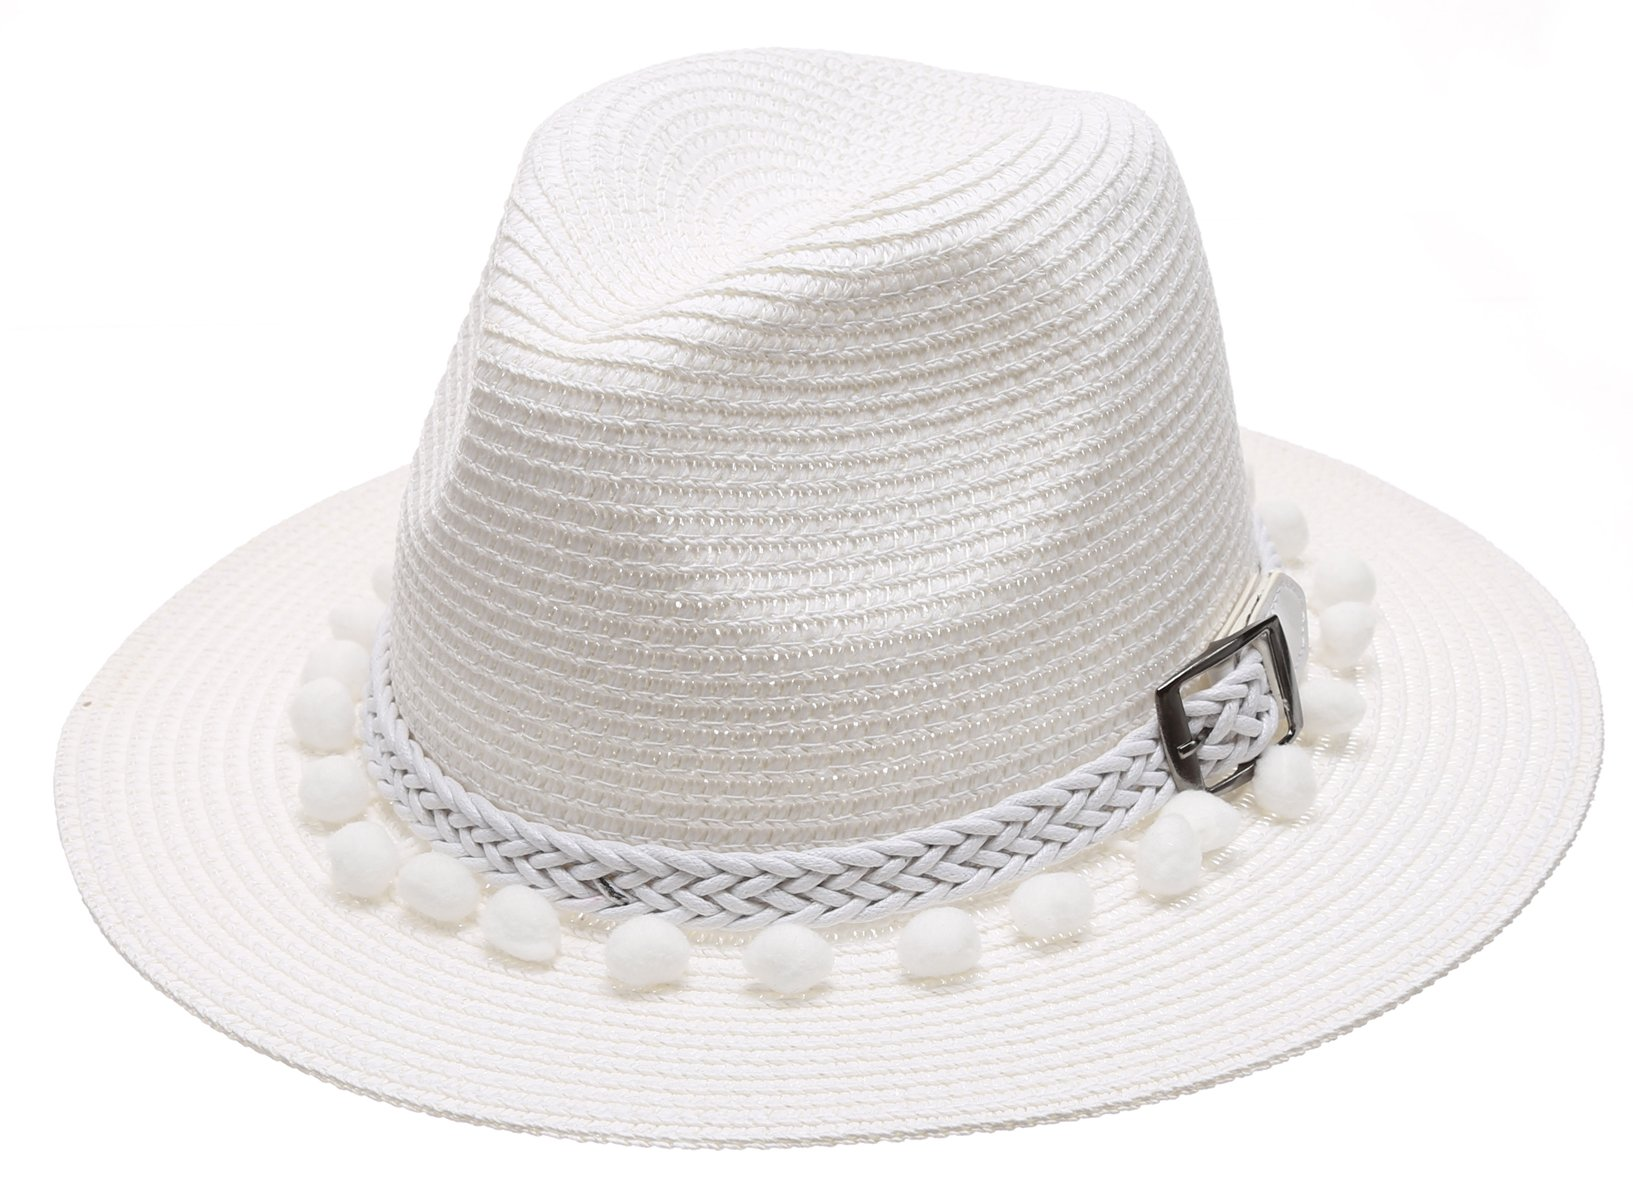 Women's Summer Panama Style Mid Brim Beach Sun Straw Hat With Pom Pom Belt Band.(White)